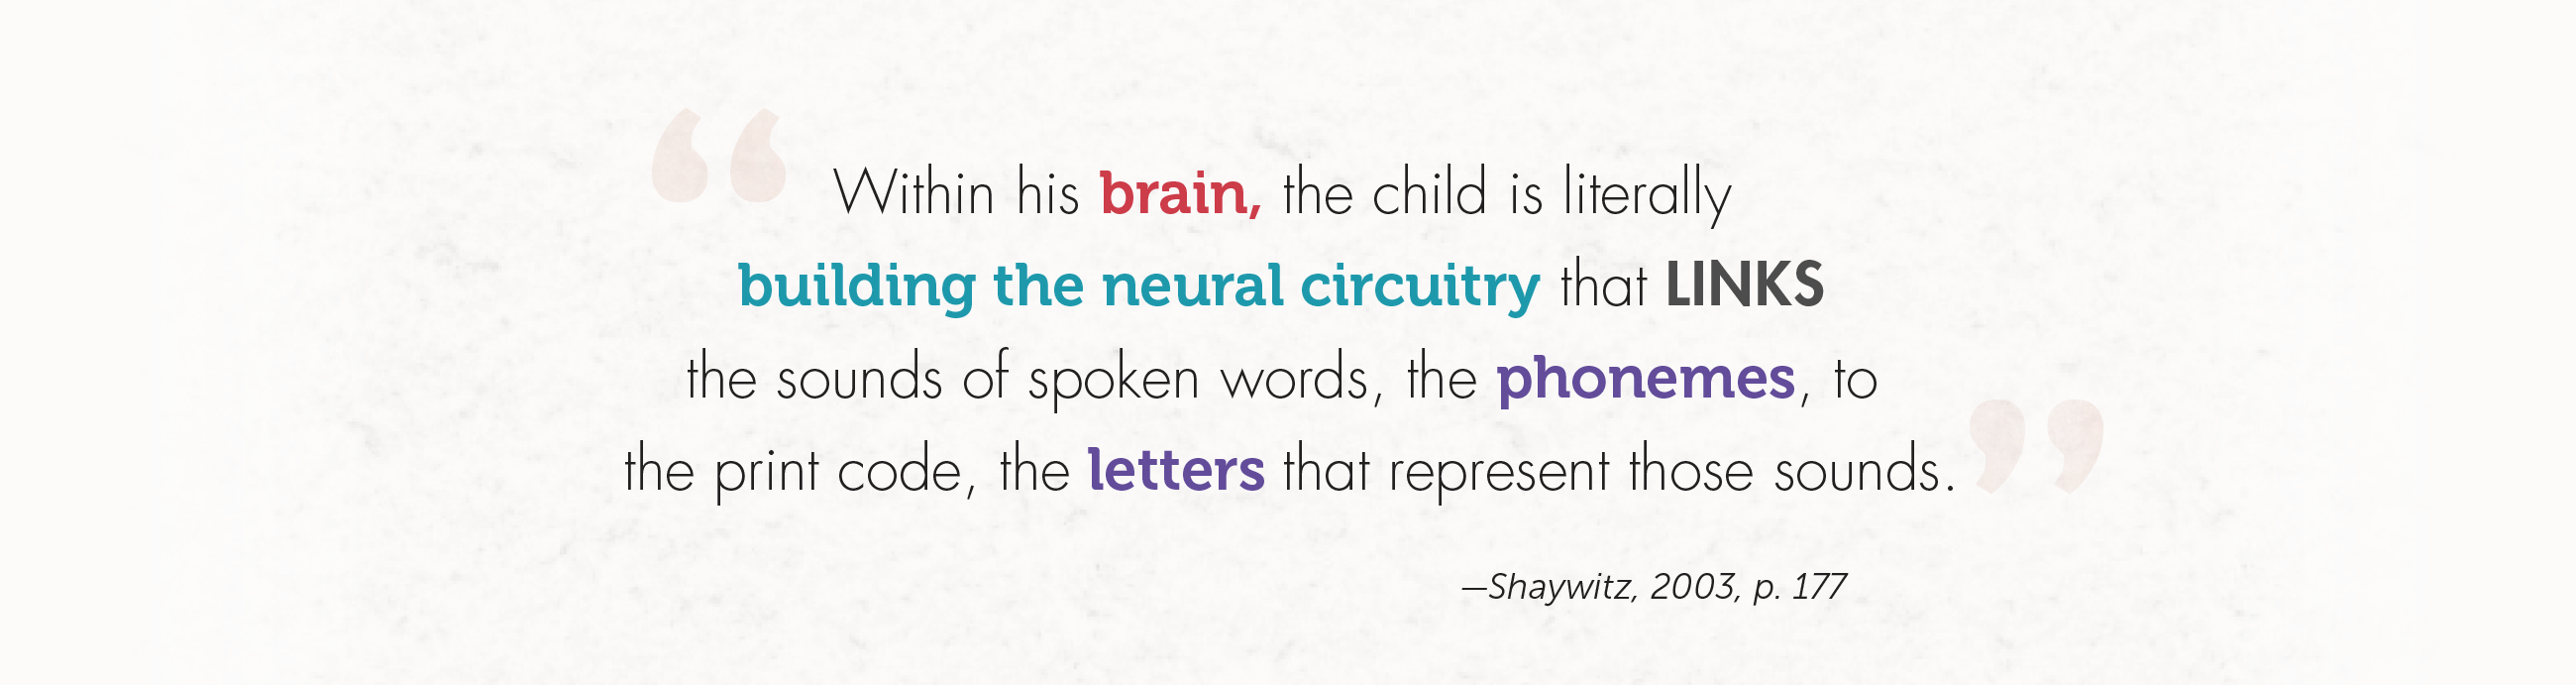 Within his brain, the child is literally building the neural circuitry that links the sounds of spoken words, the phonemes, to the print code, the letters that represent those sounds.